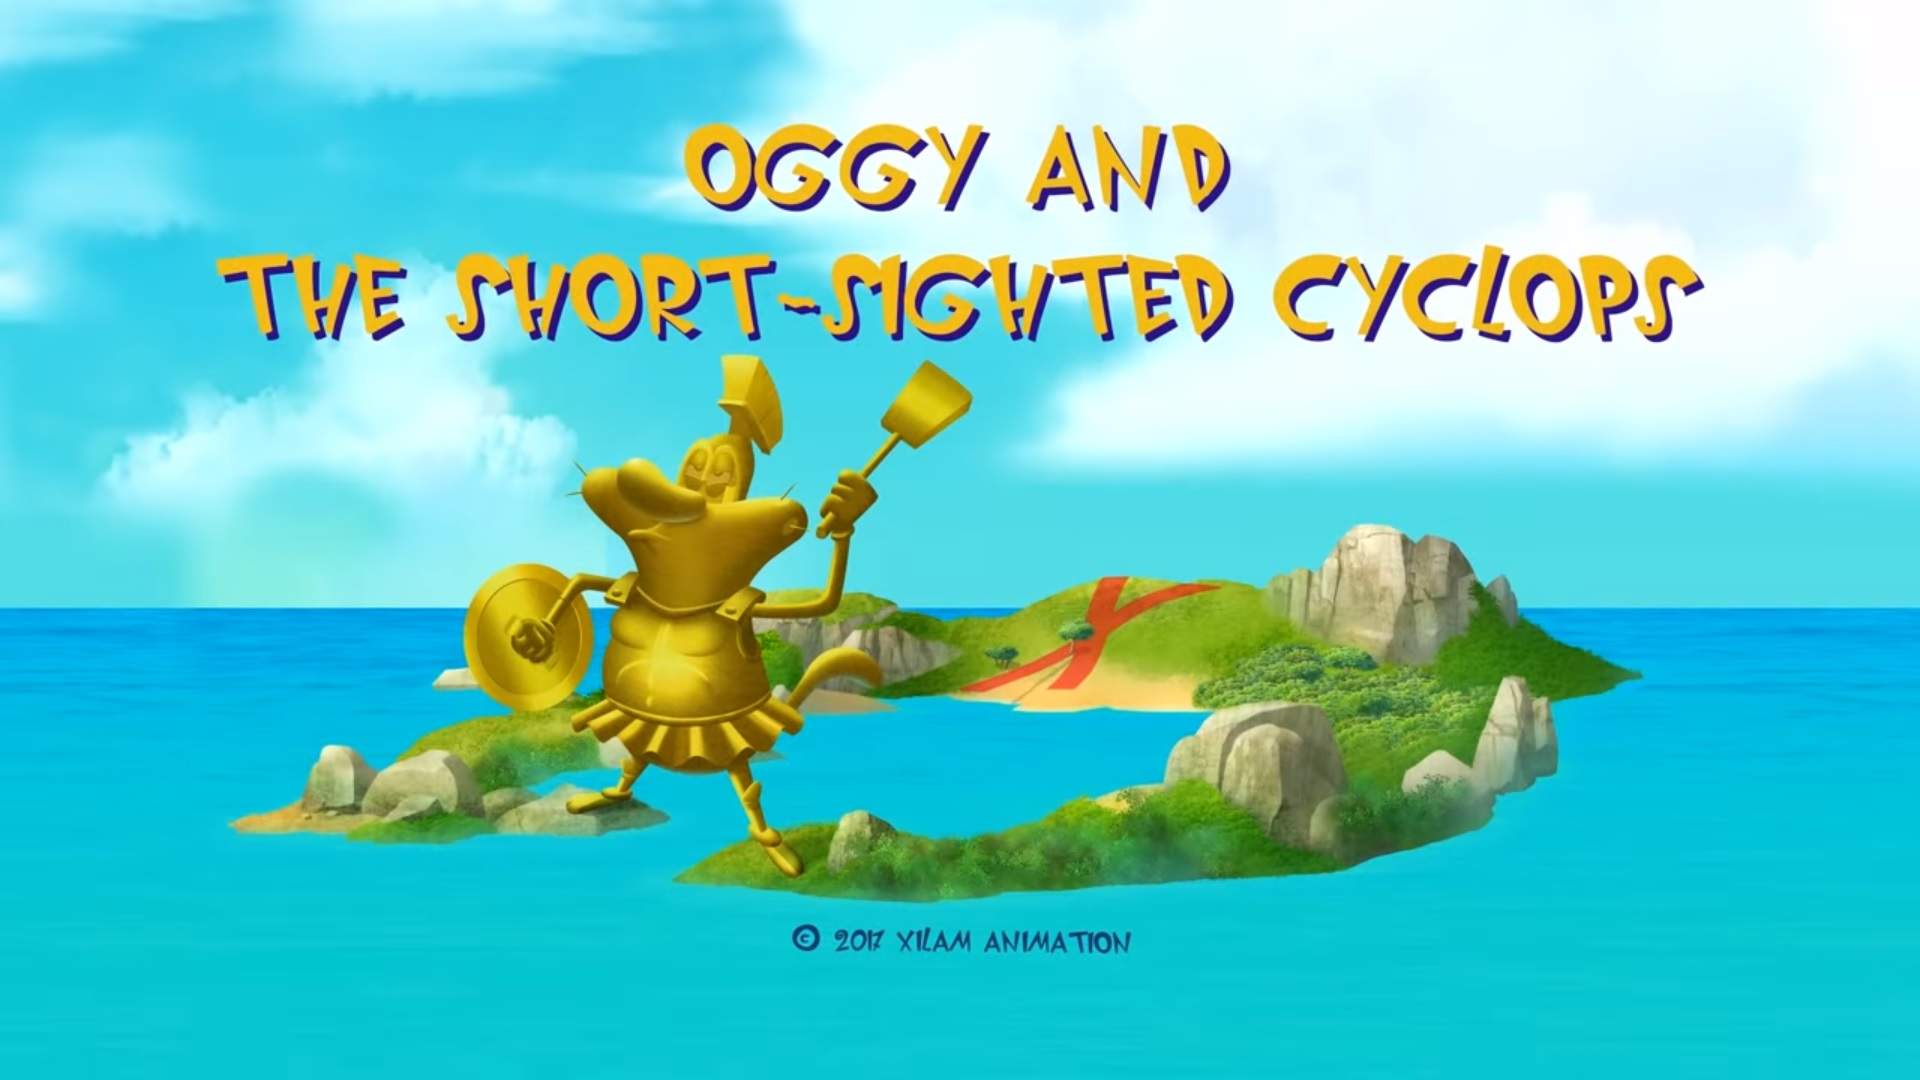 Oggy and the Short-Sighted Cyclops